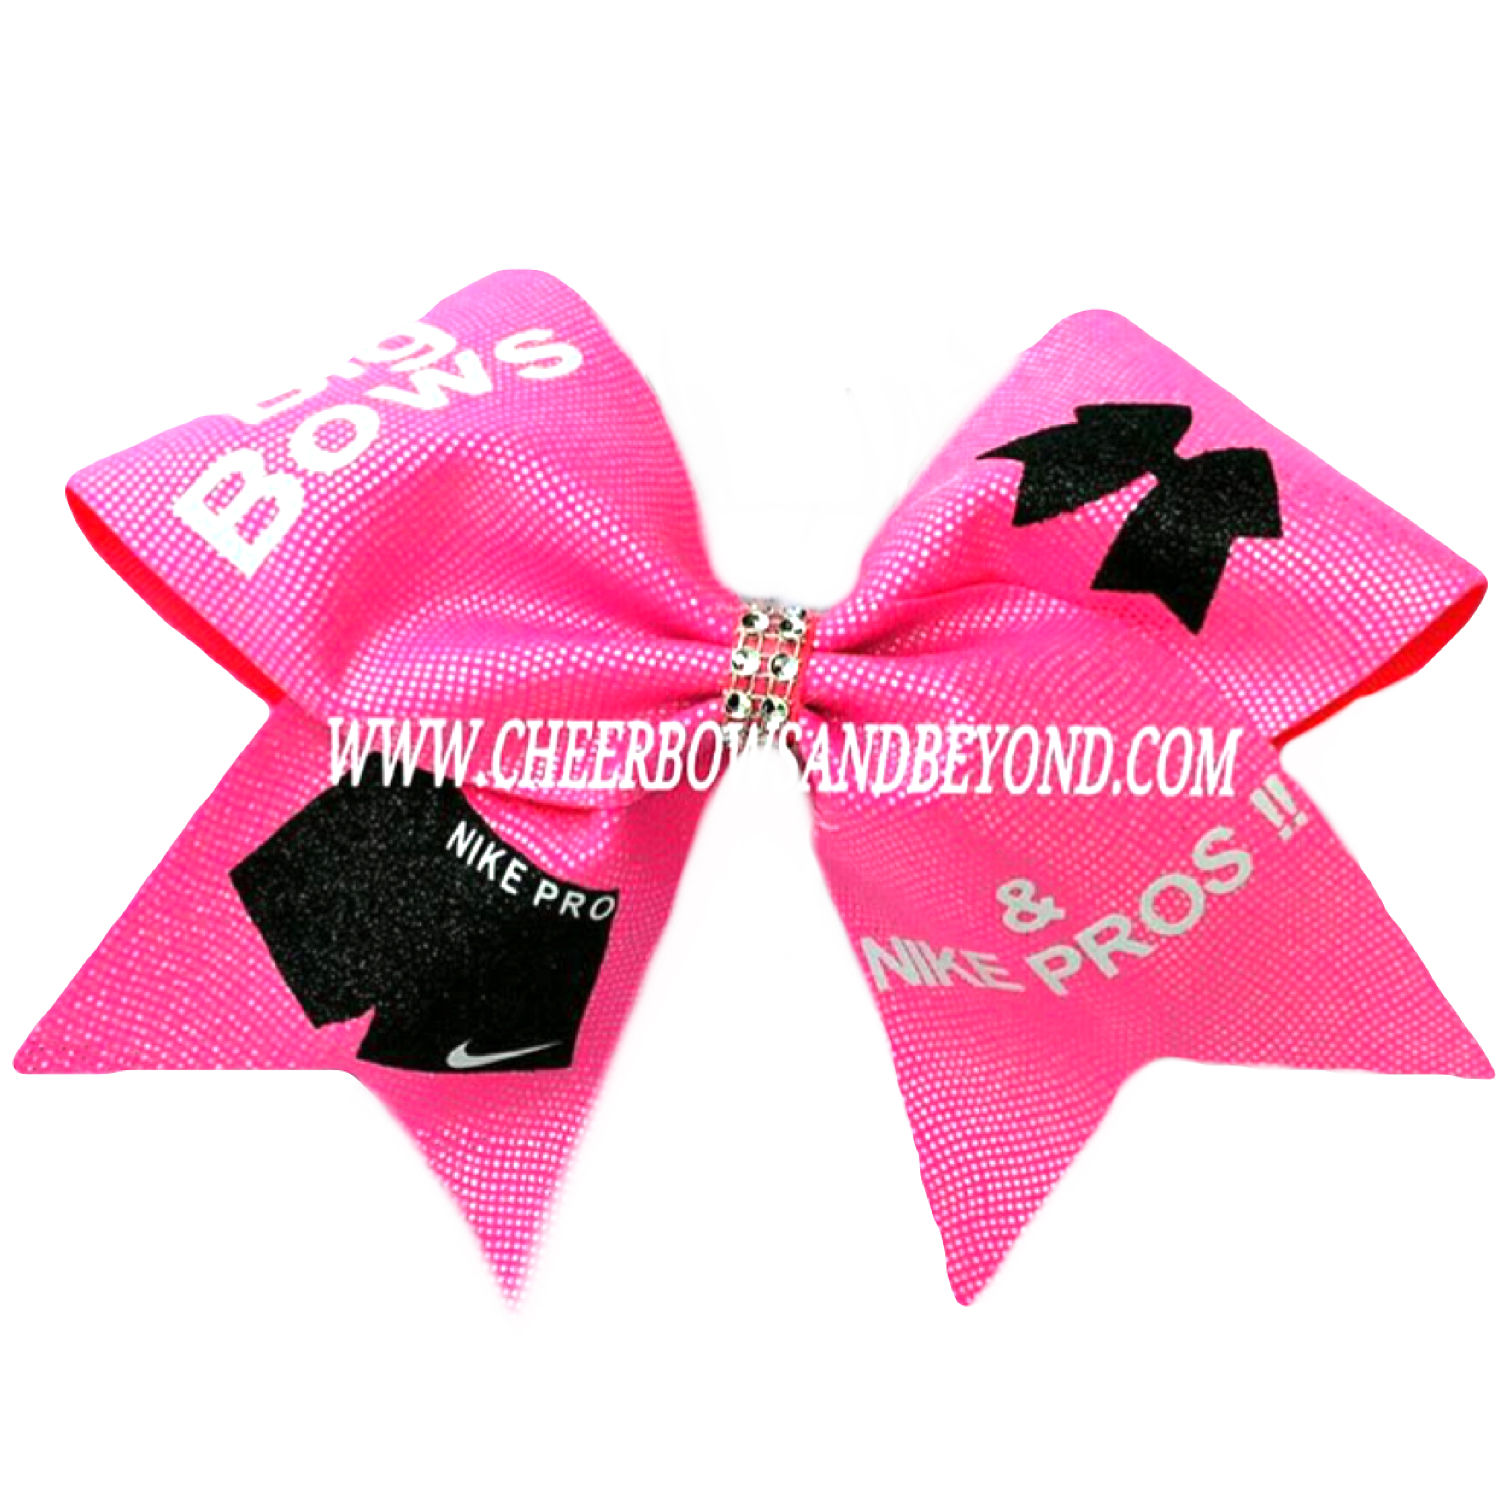 f7147c49239c8 Big Bows & Nike Pros Cheer & Dance Bow*Several Options*